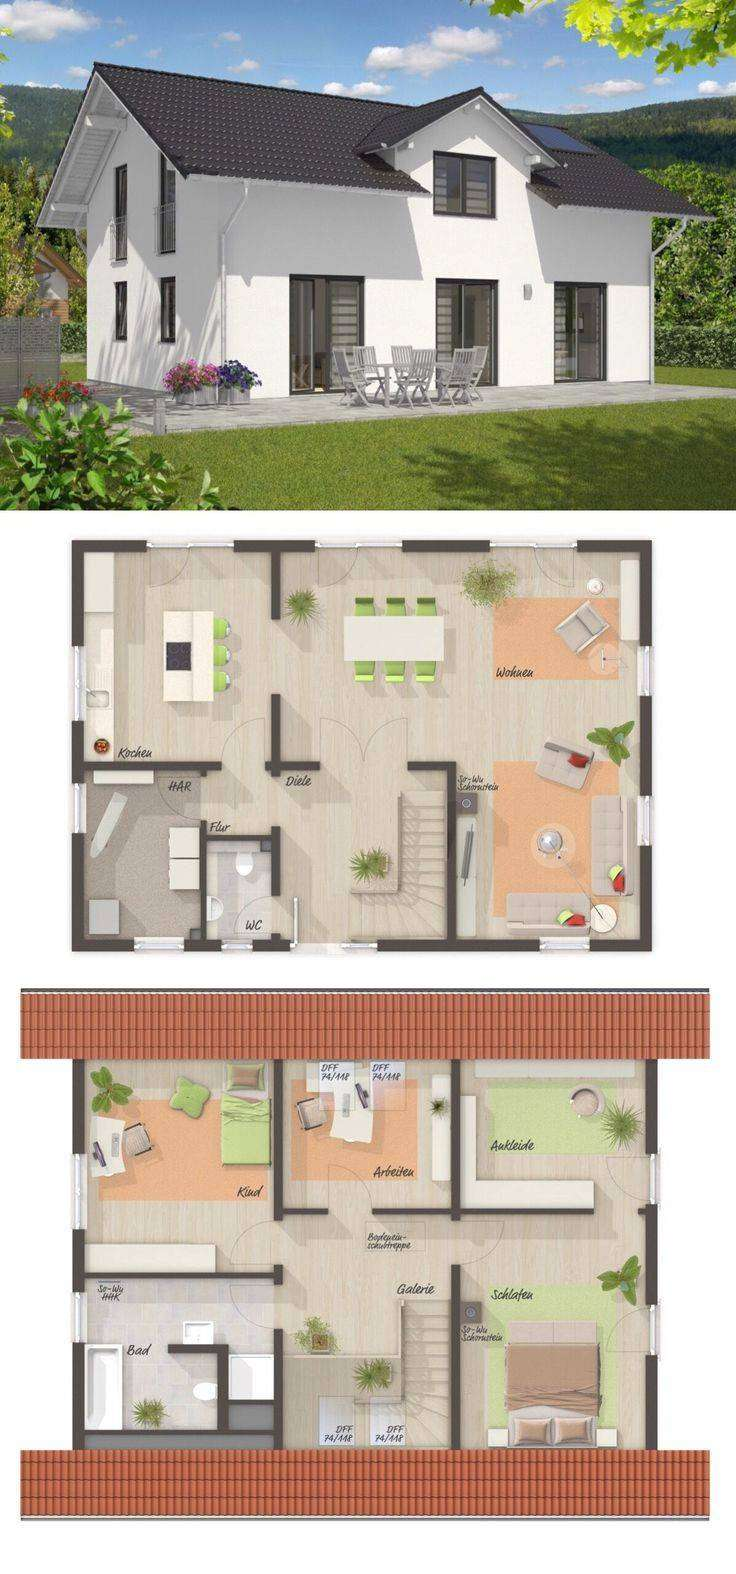 Building plans and construction architecture 0